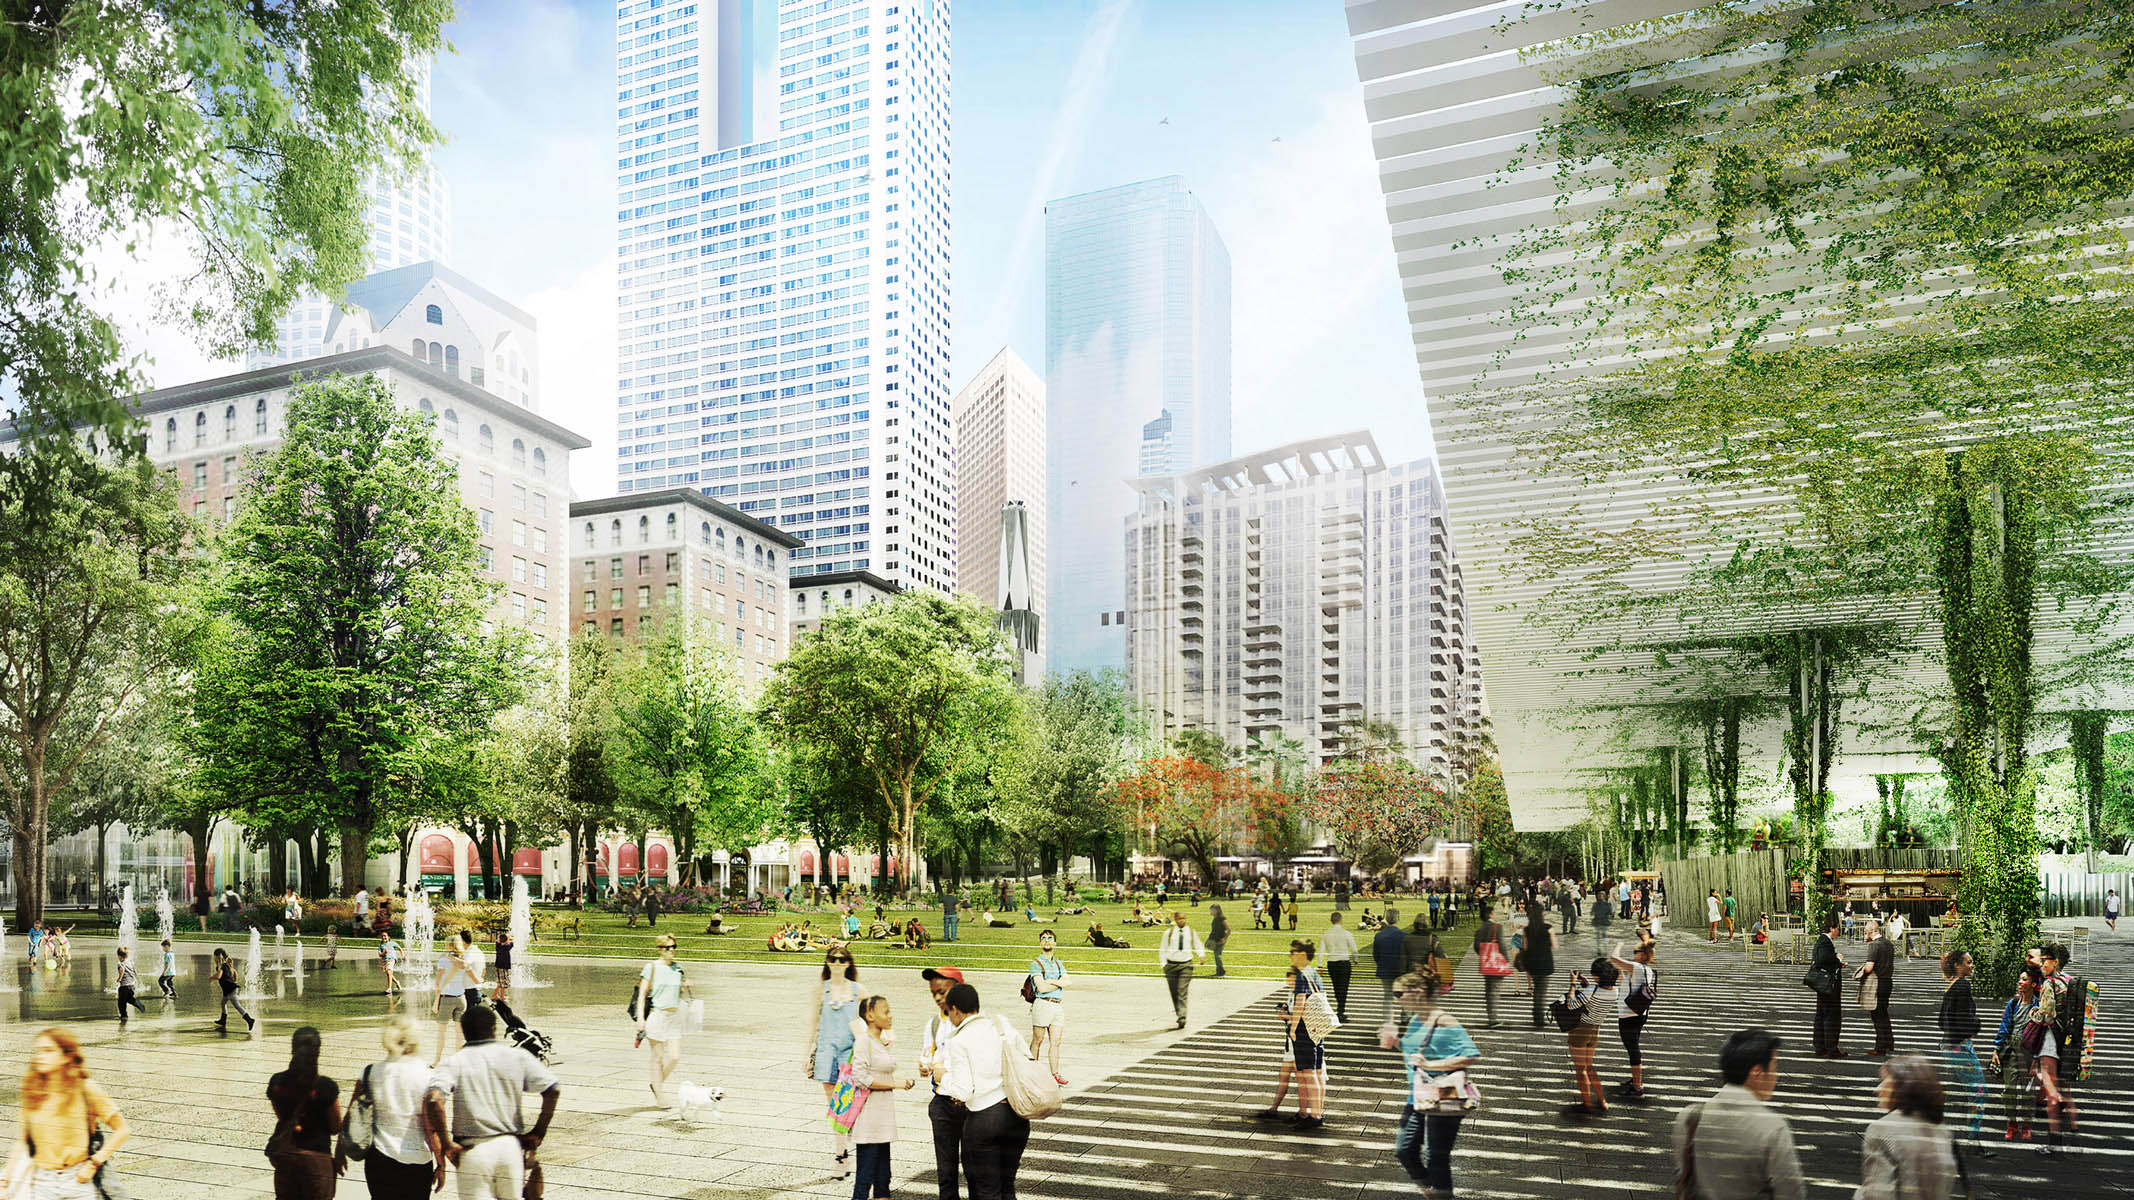 Rendering of the new Pershing Square, with tree-lined walkways